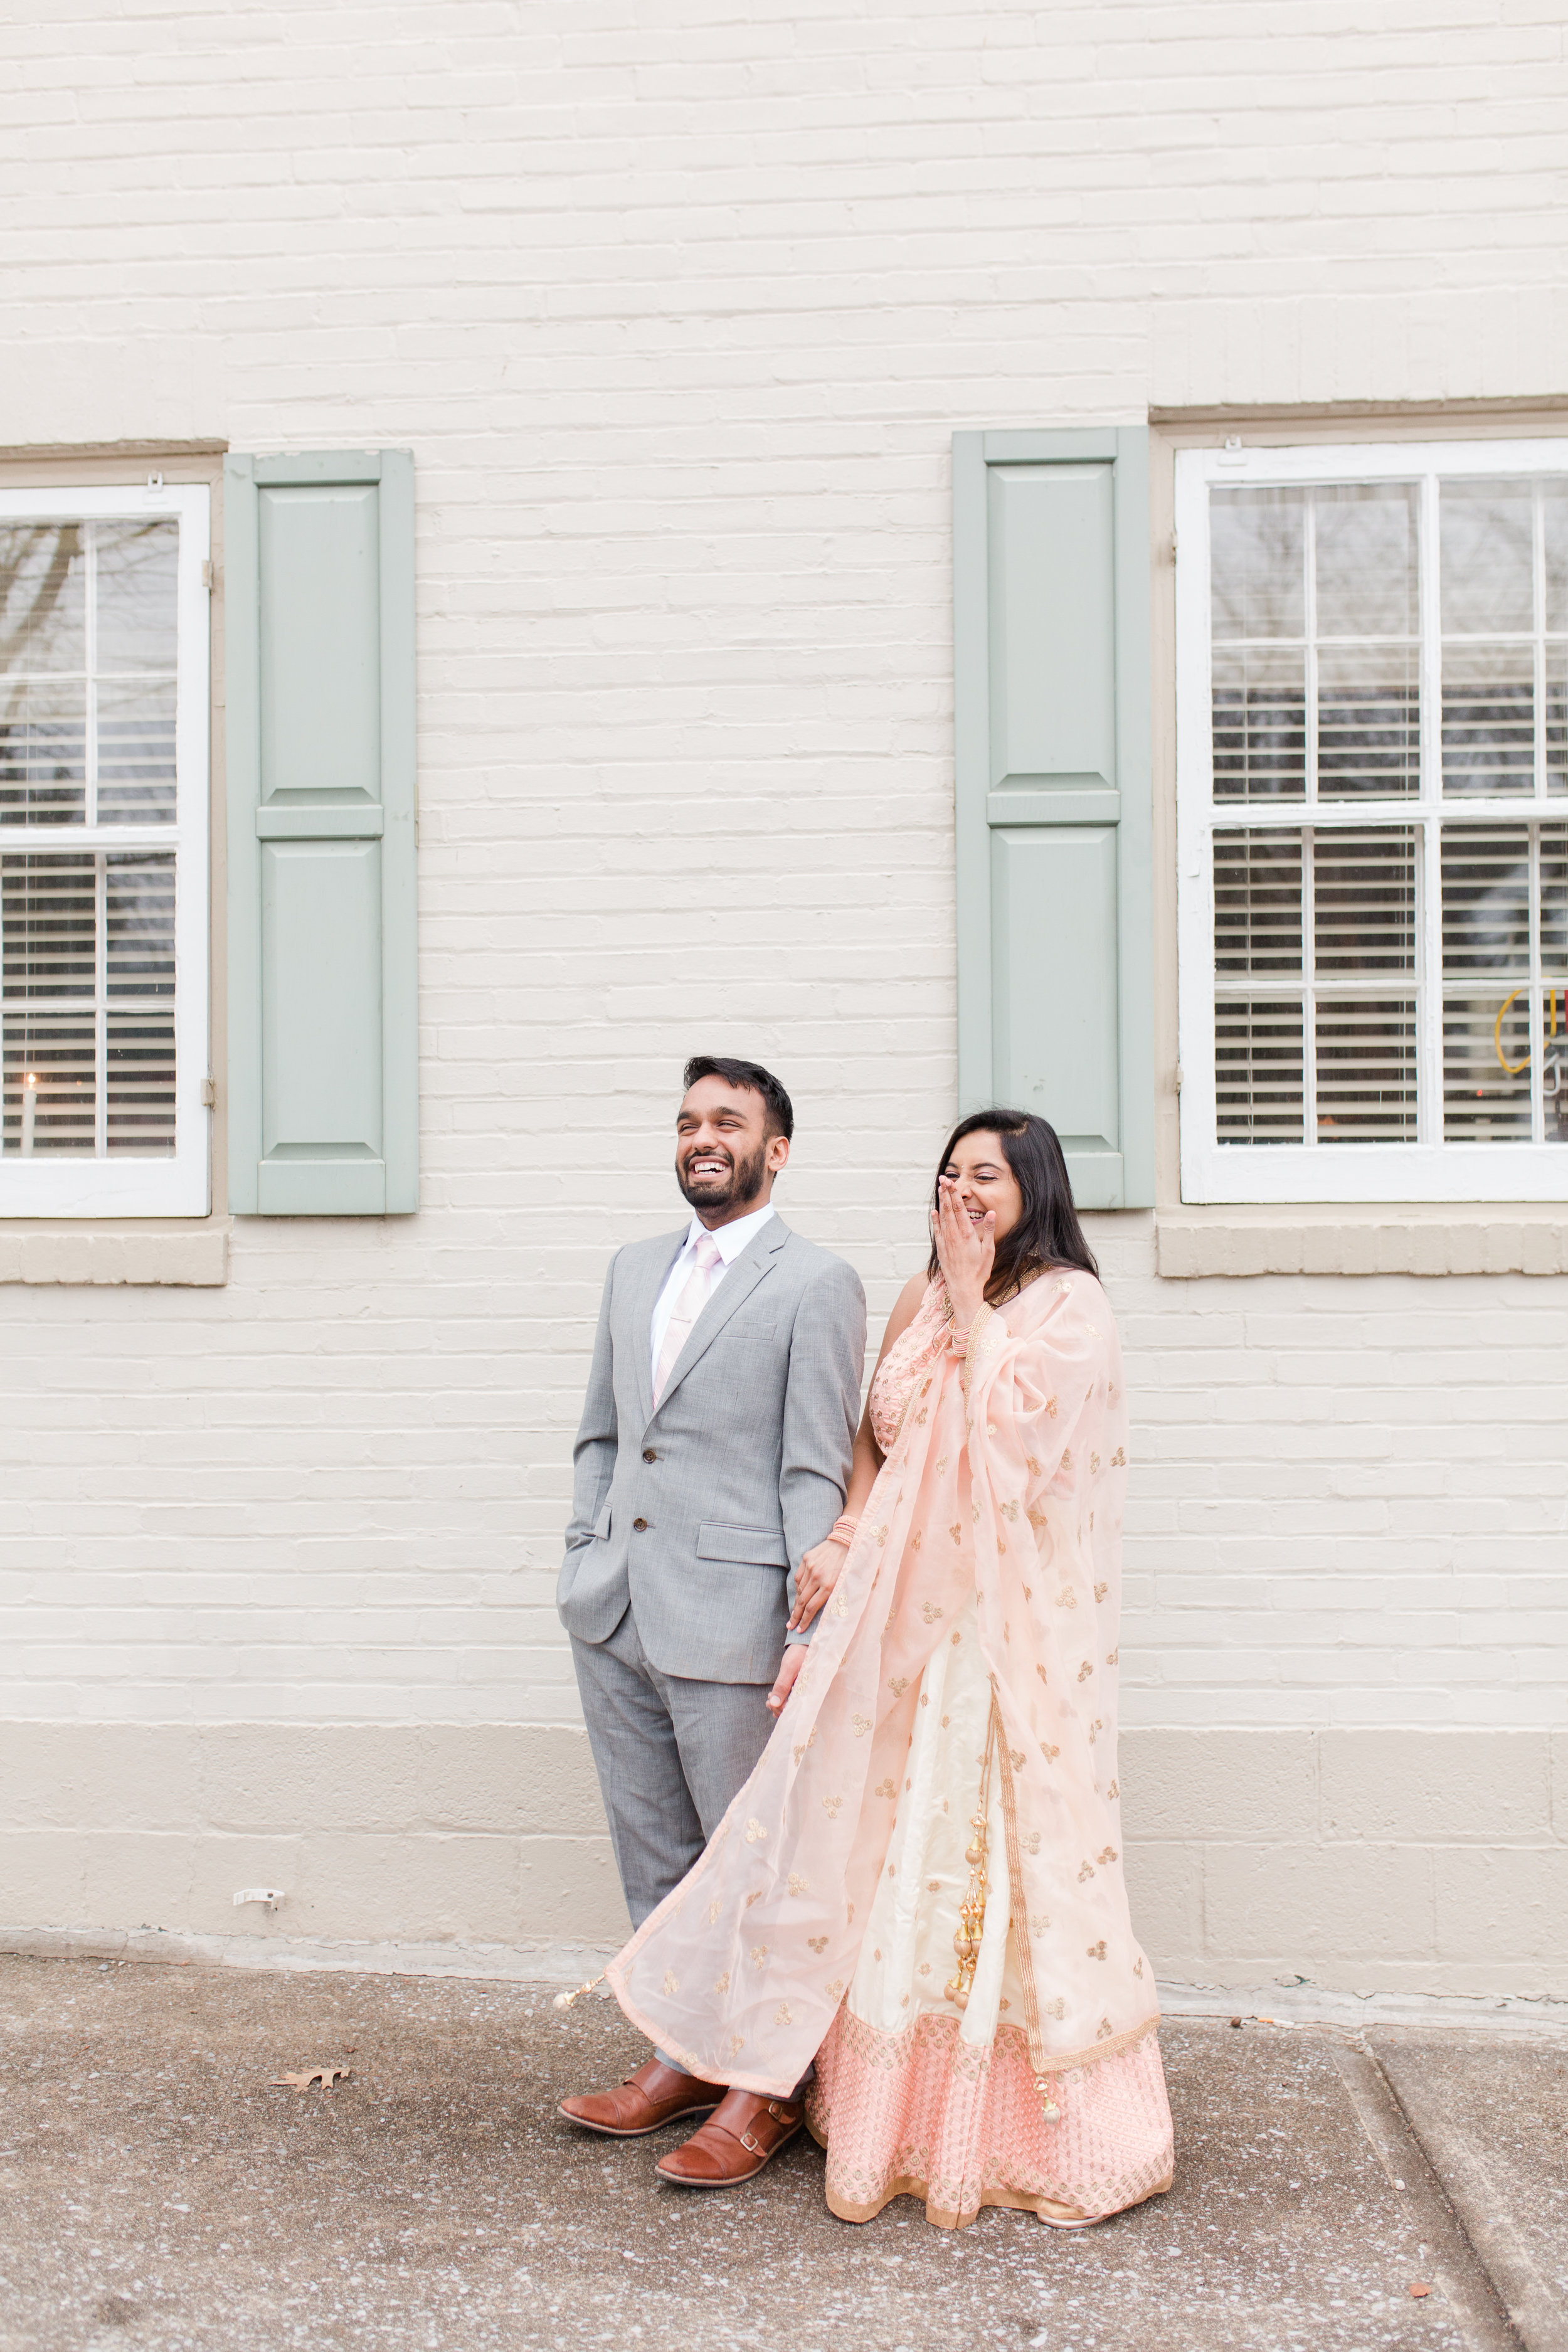 gopika and anumeet courtship portraits, shepherdstown, WV Feb 2019-4.jpg